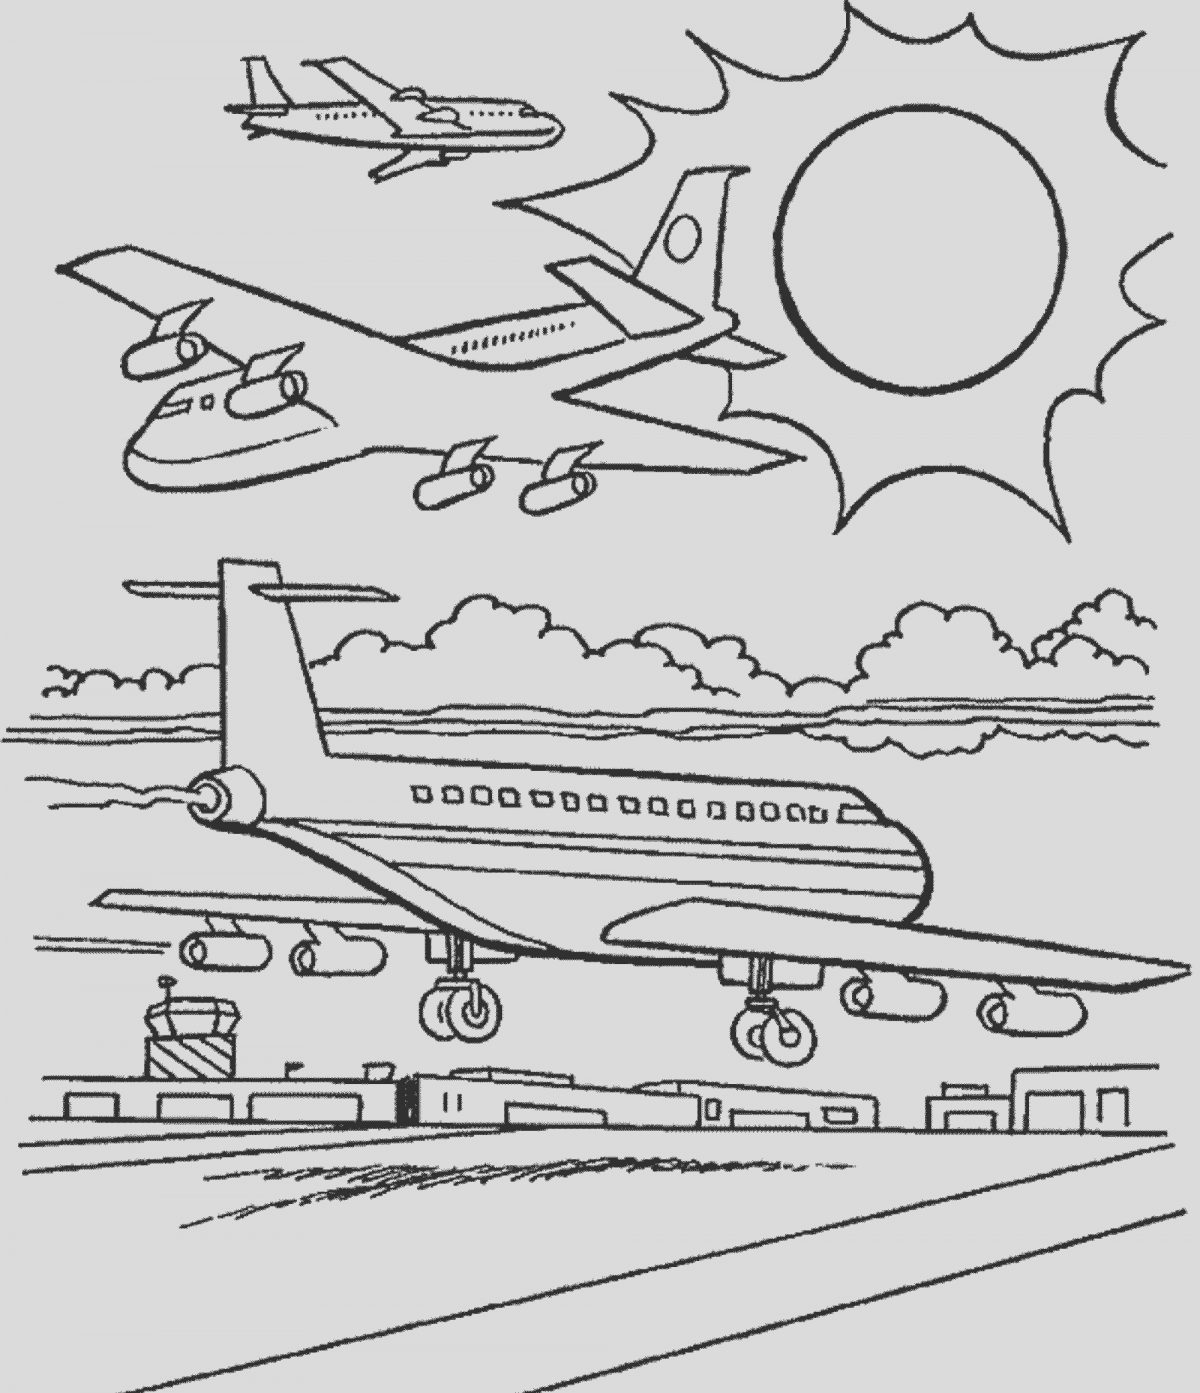 Airplane Coloring Page for Adults Best Of Airplane Coloring Pages for Adults